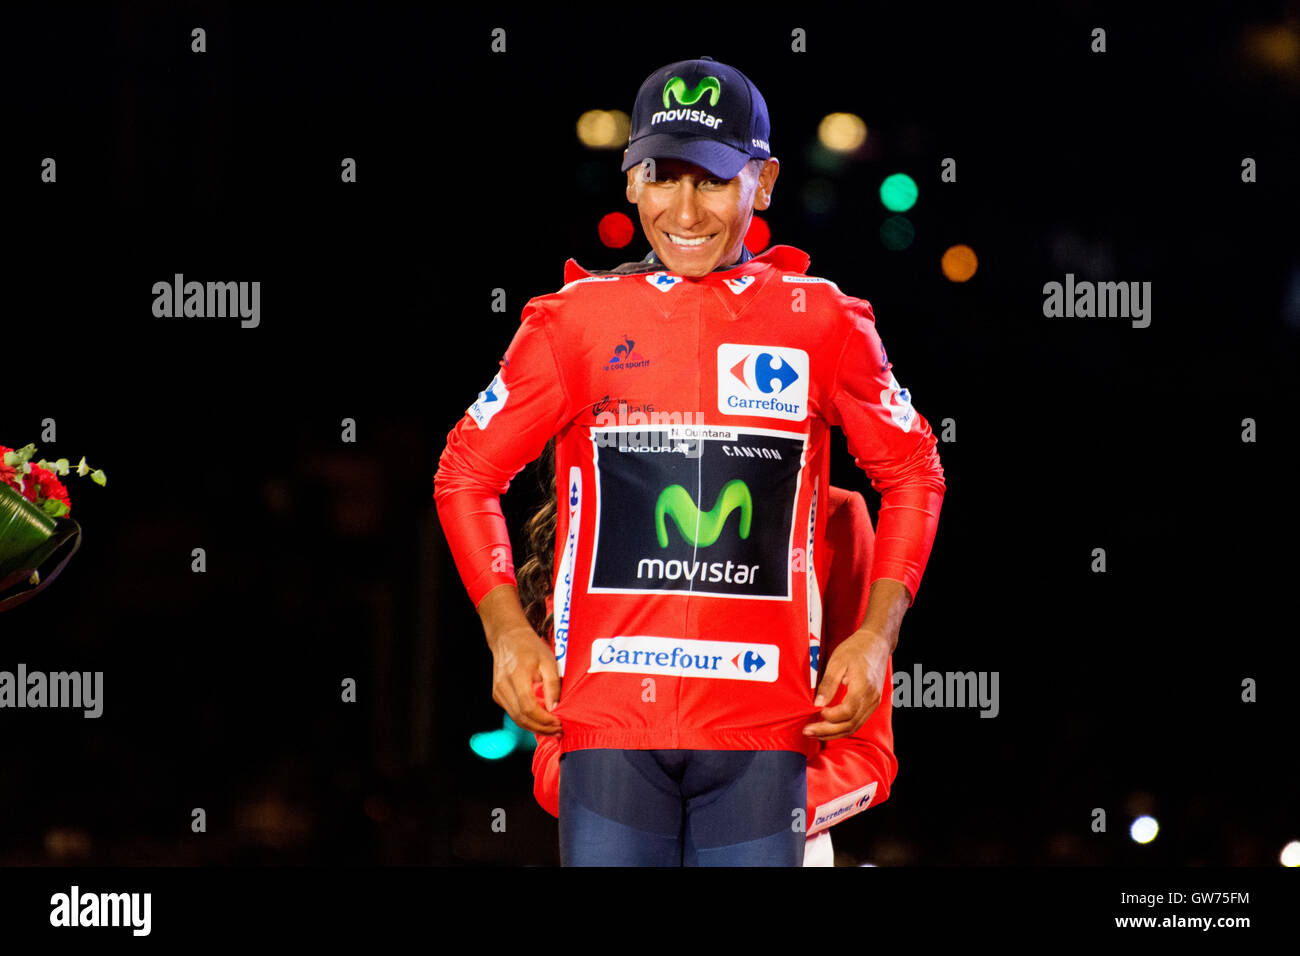 Madrid, Spain. 11th September, 2016. Nairo celebrates his victory at final podium of 21st stage of cycling race - Stock Image